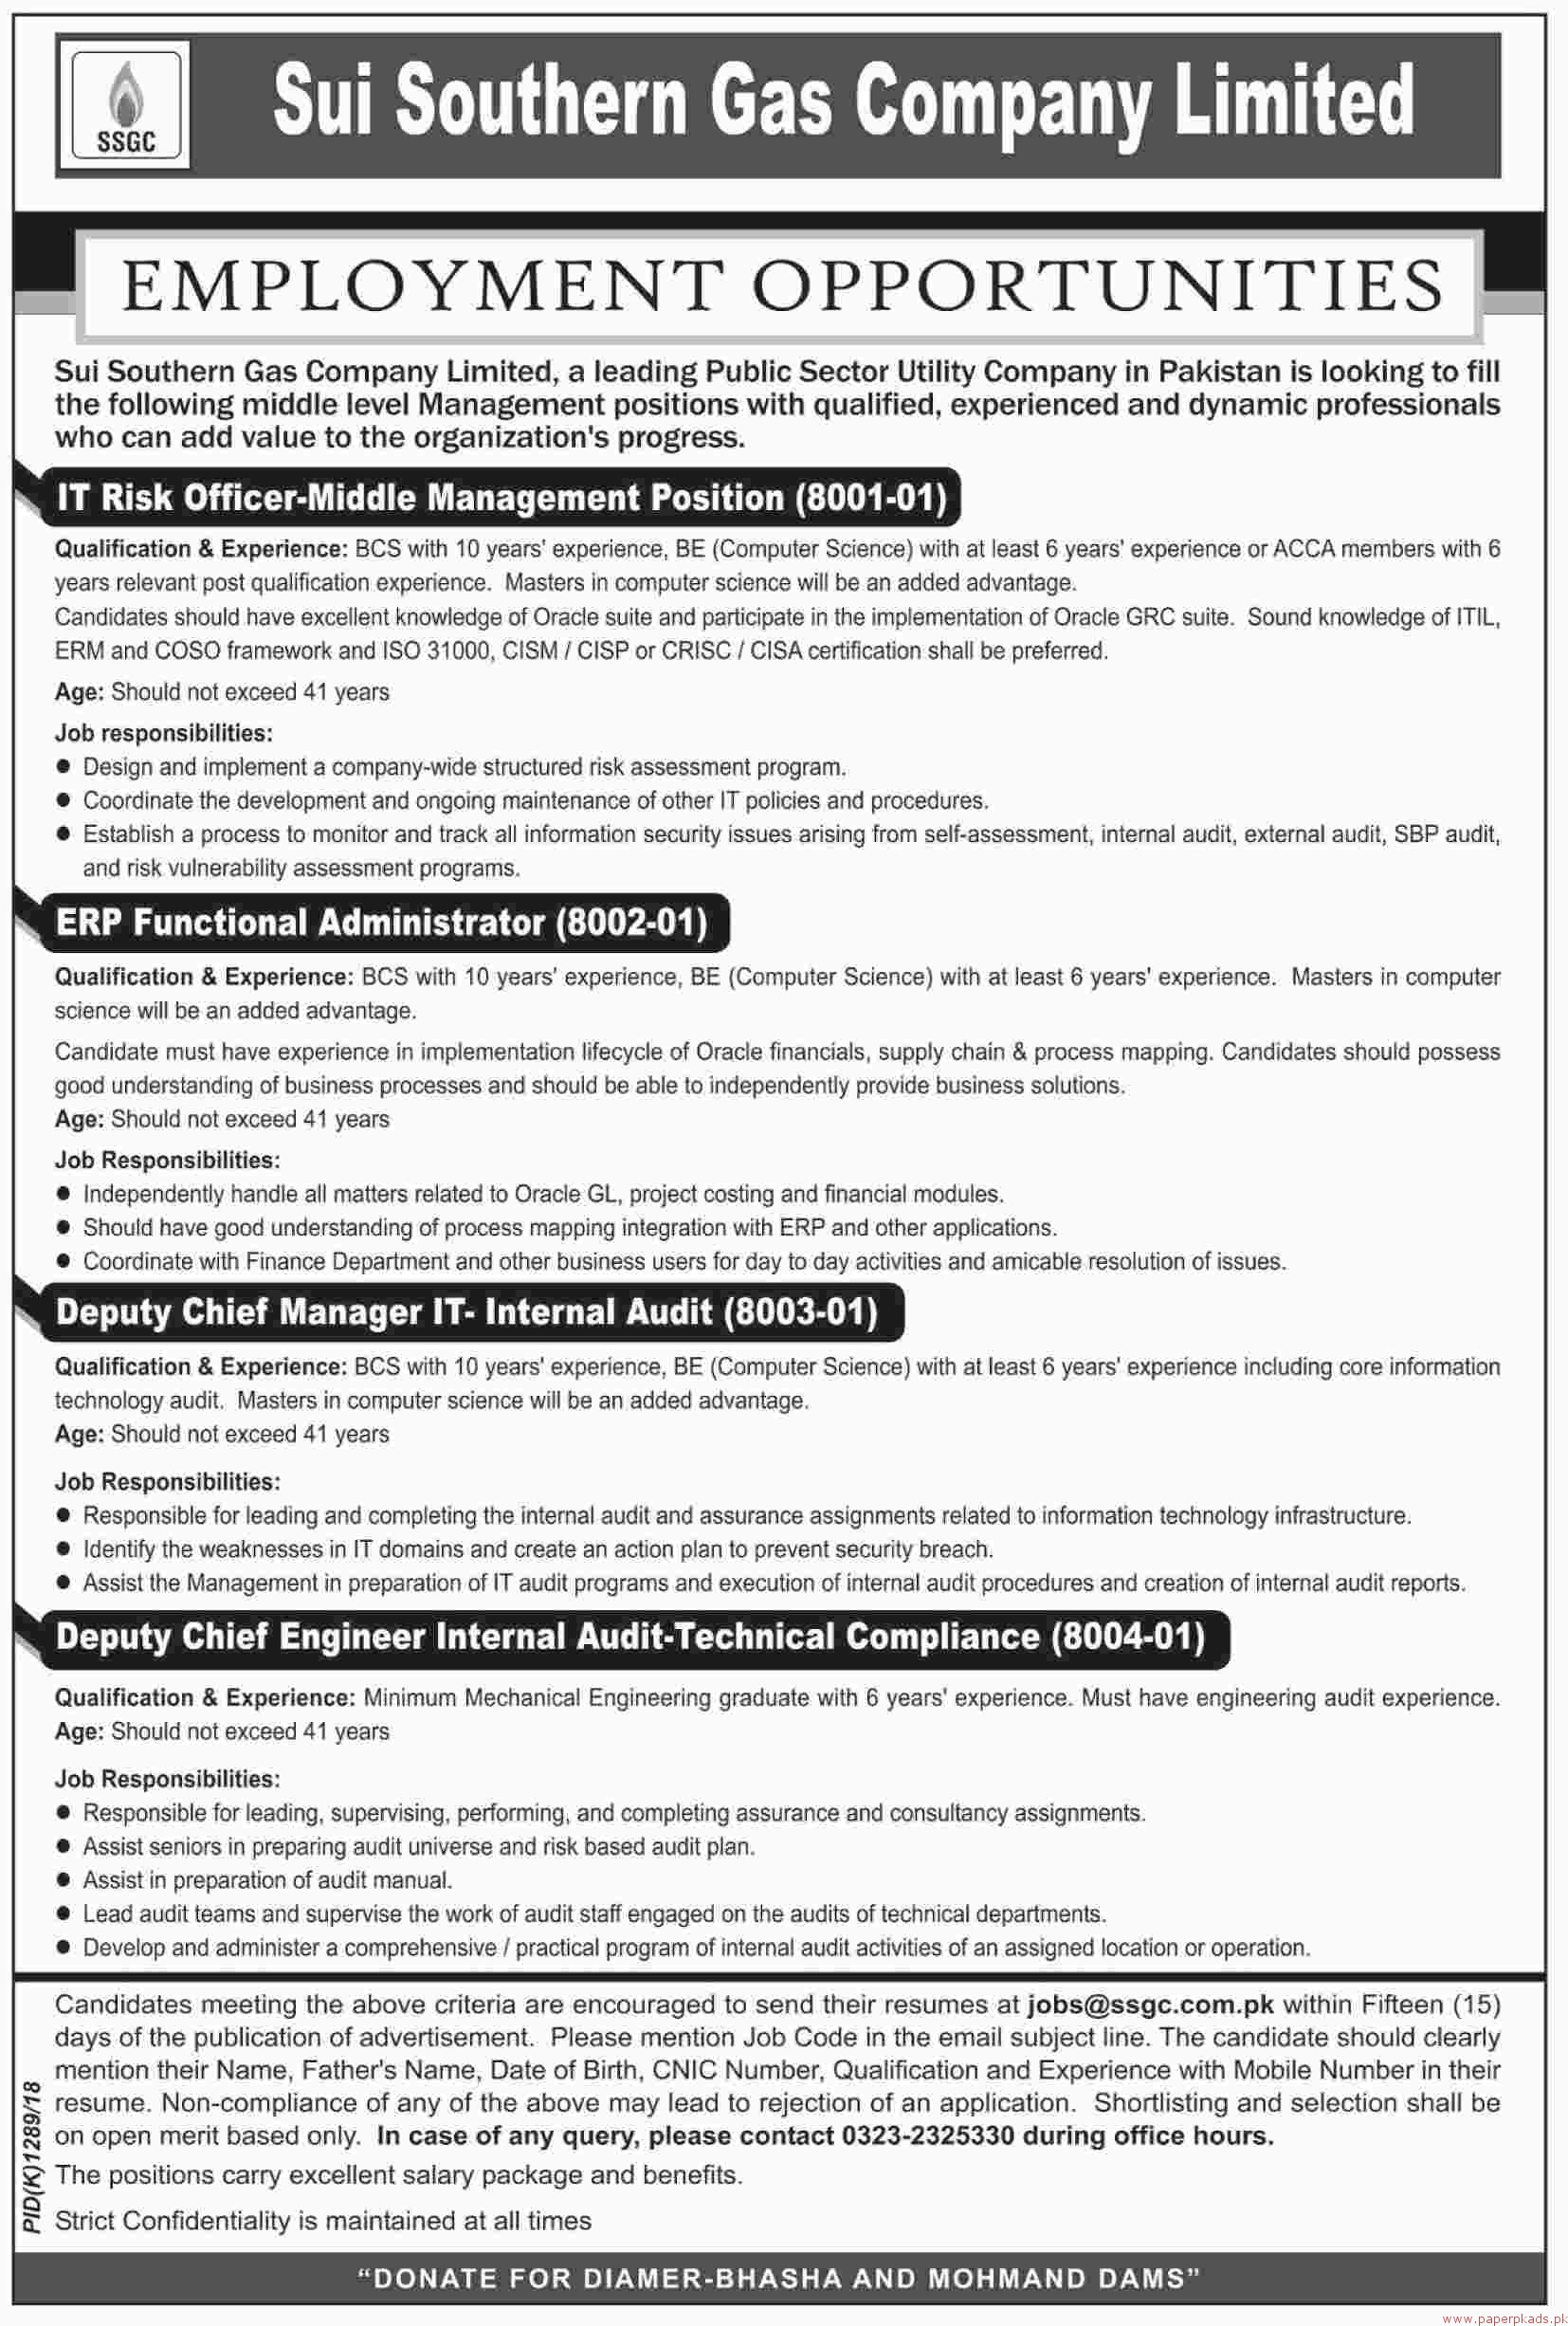 Sui Southern Gas Company Limited Jobs 2018 Latest